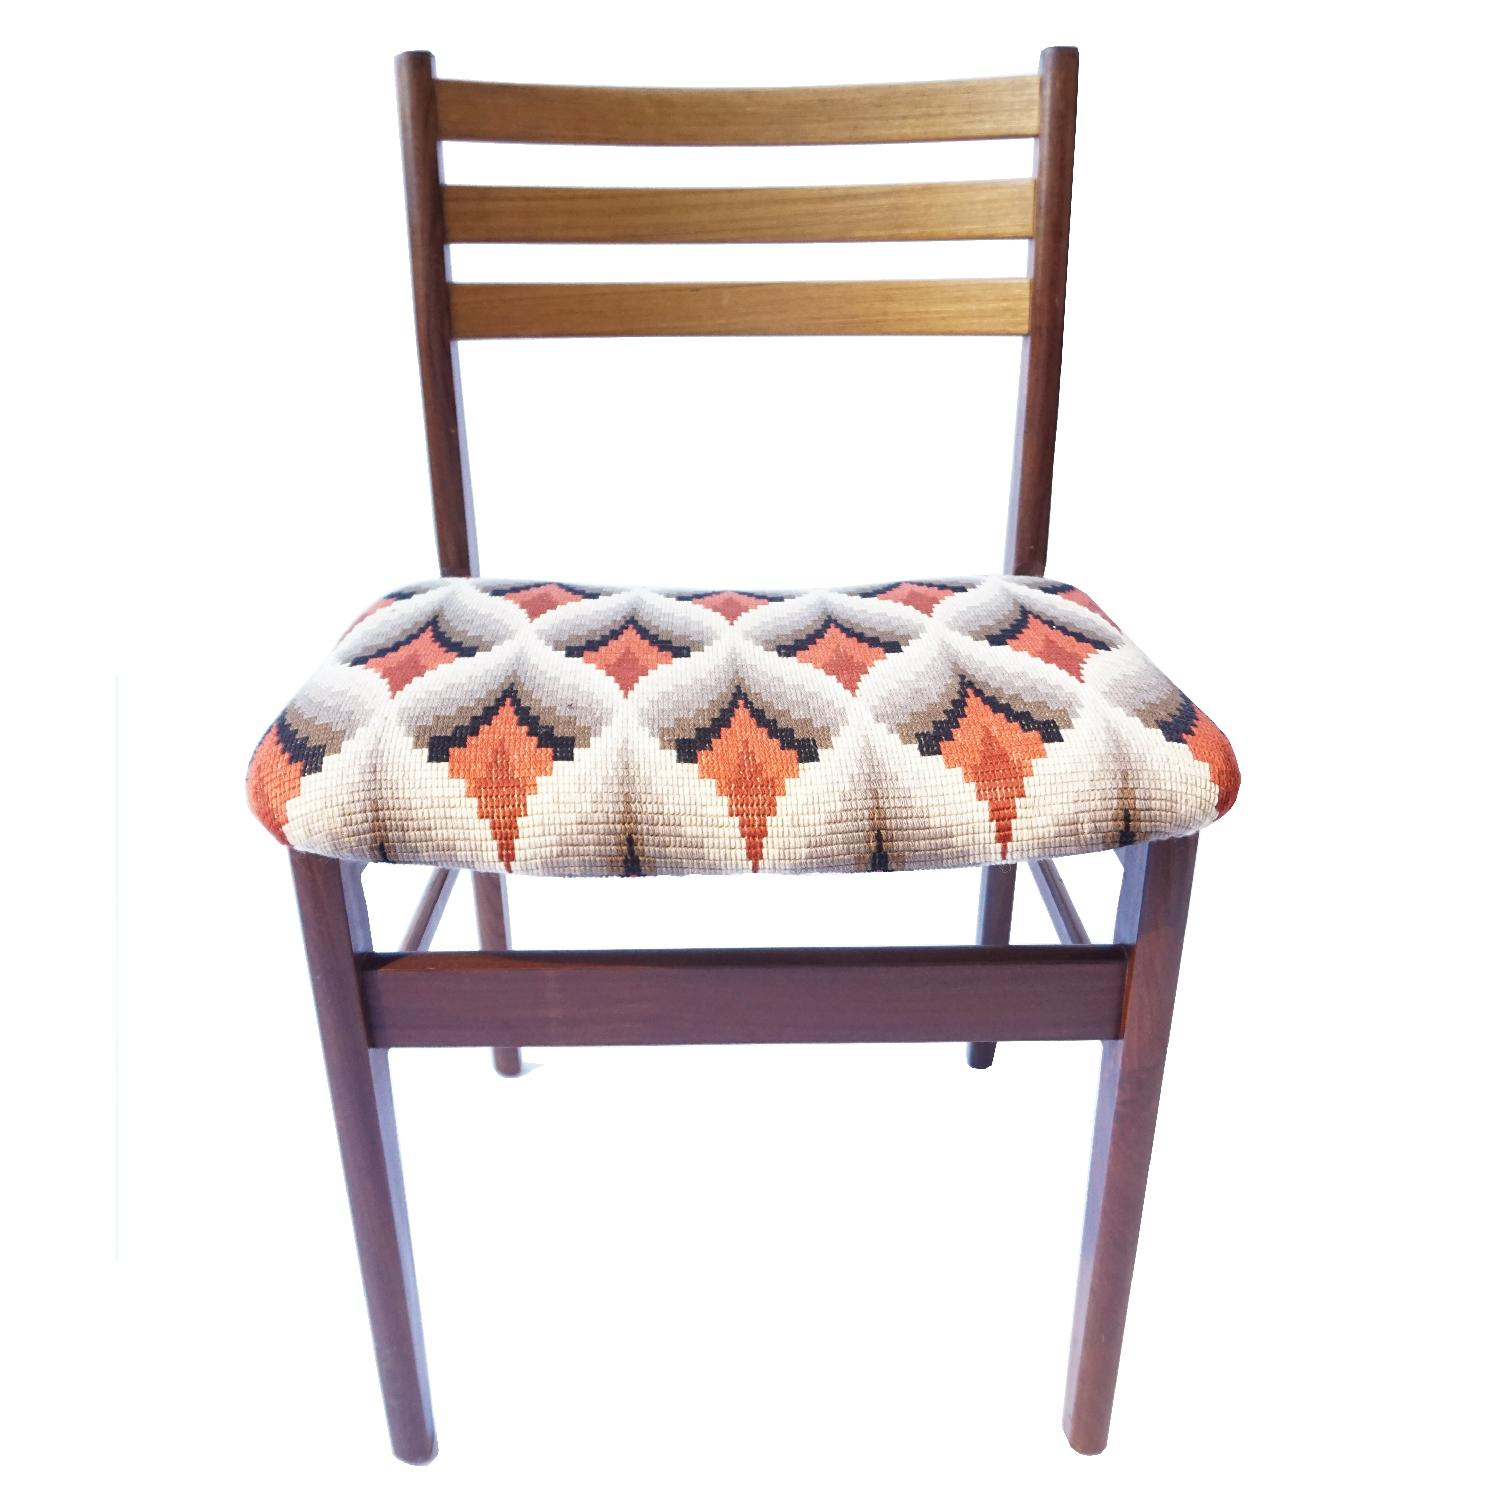 Vintage Danish Furniture Makers Chairs - image-4